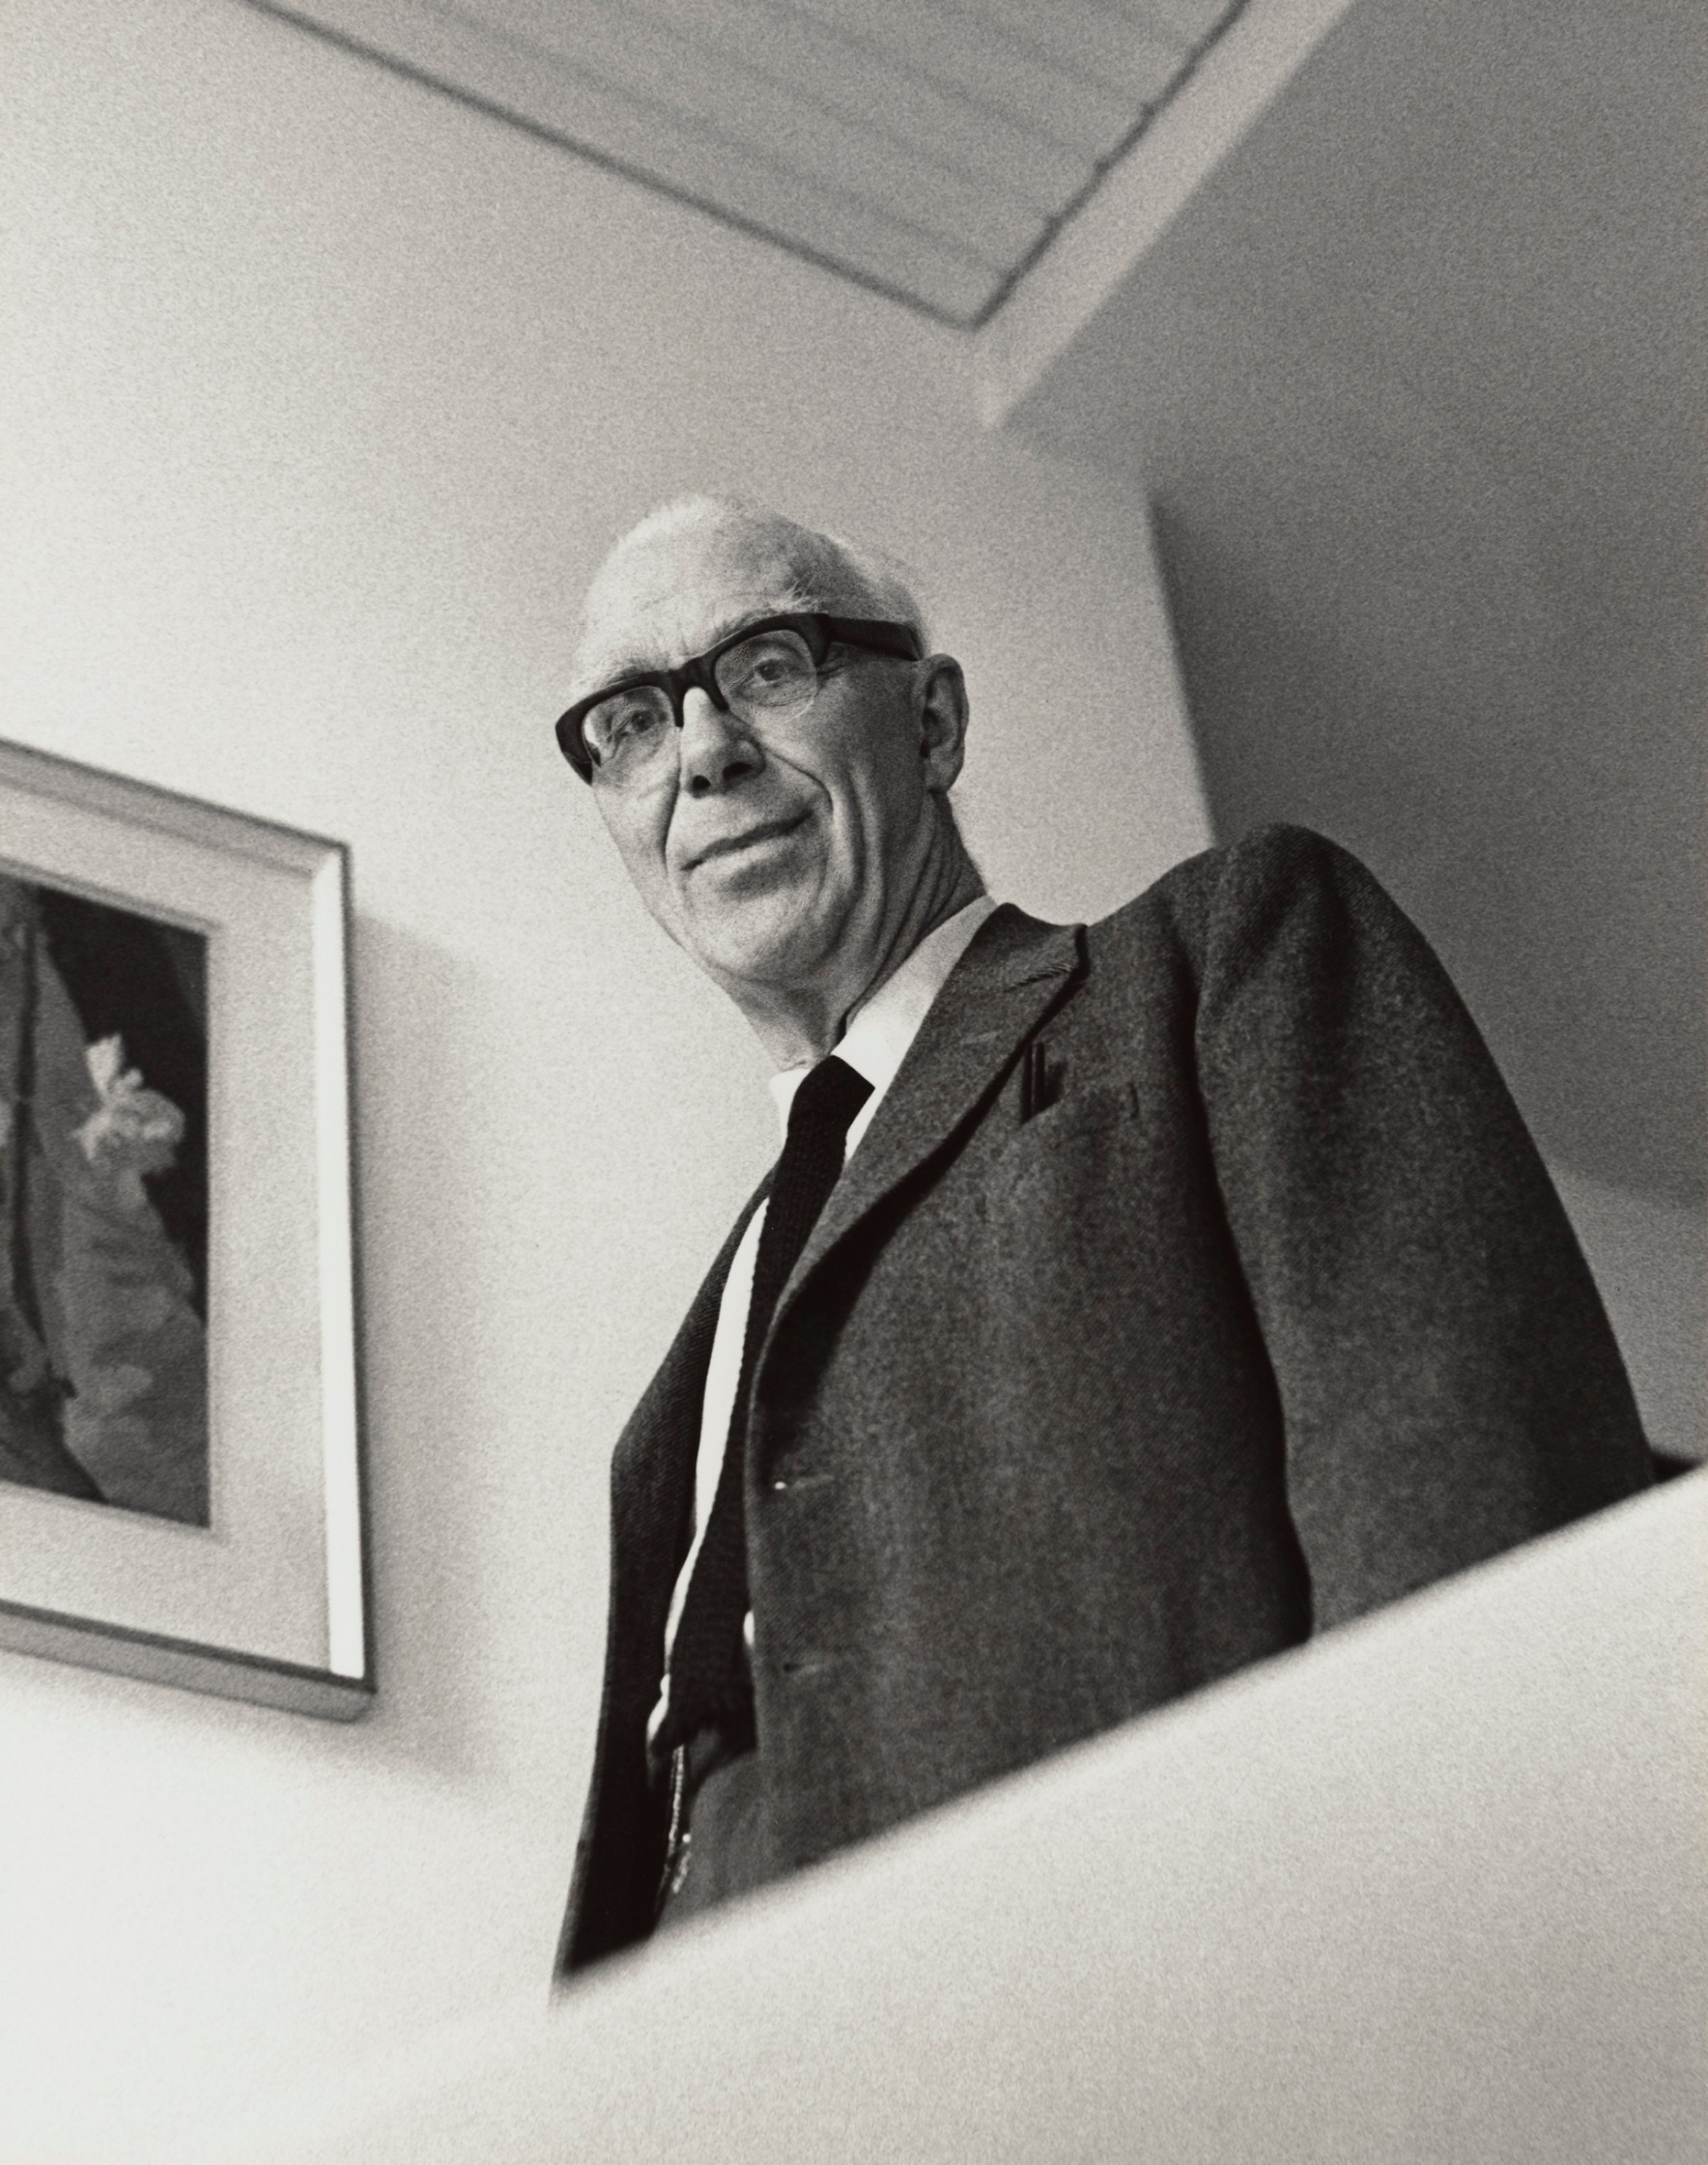 Sir_Ove_Arup_by_Godfrey_Argent_25_April_1969__National_Portrait_Gallery_London